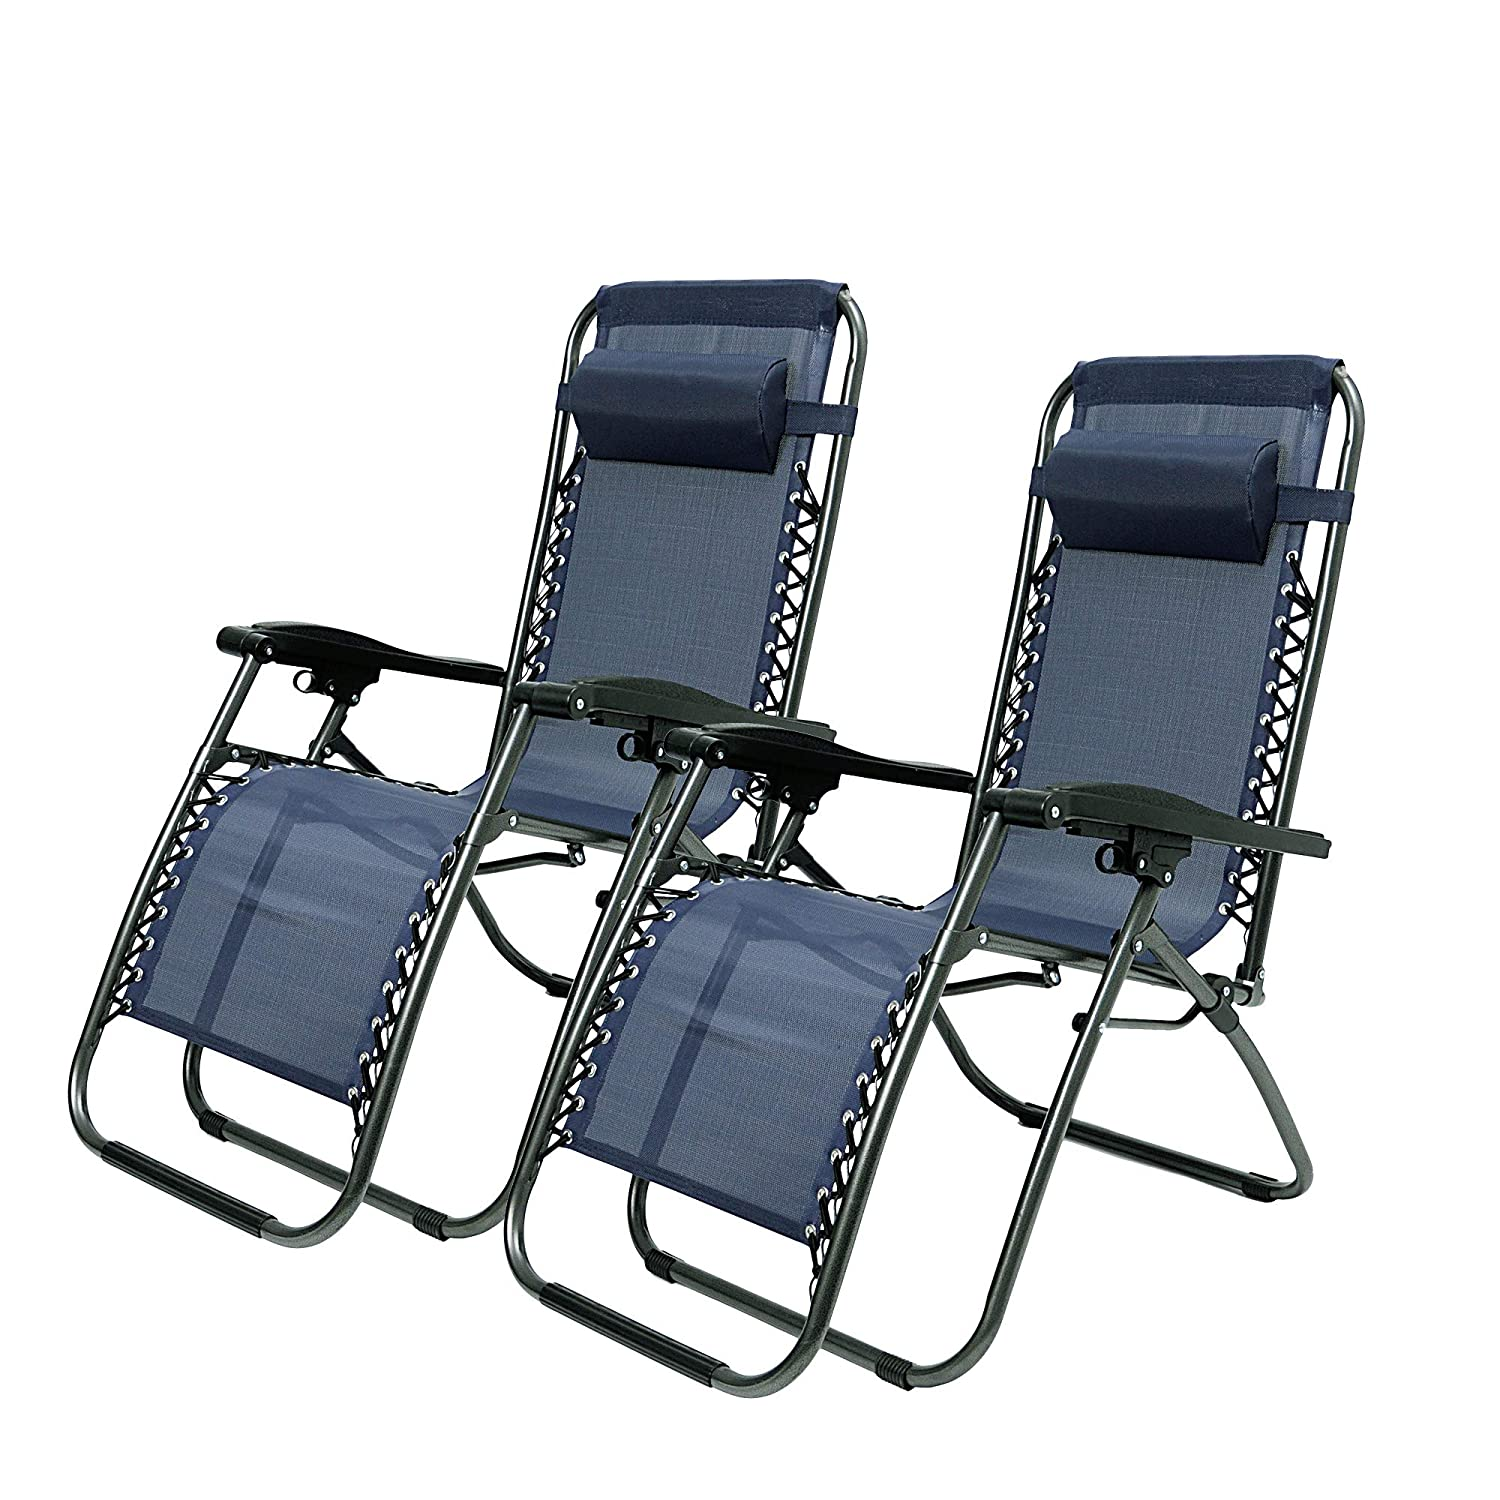 Livebest Set of 2 Adjustable Zero Gravity Chair Patio Lounge Chairs Folding Recliner Outdoor Pool Yard Beach Blue